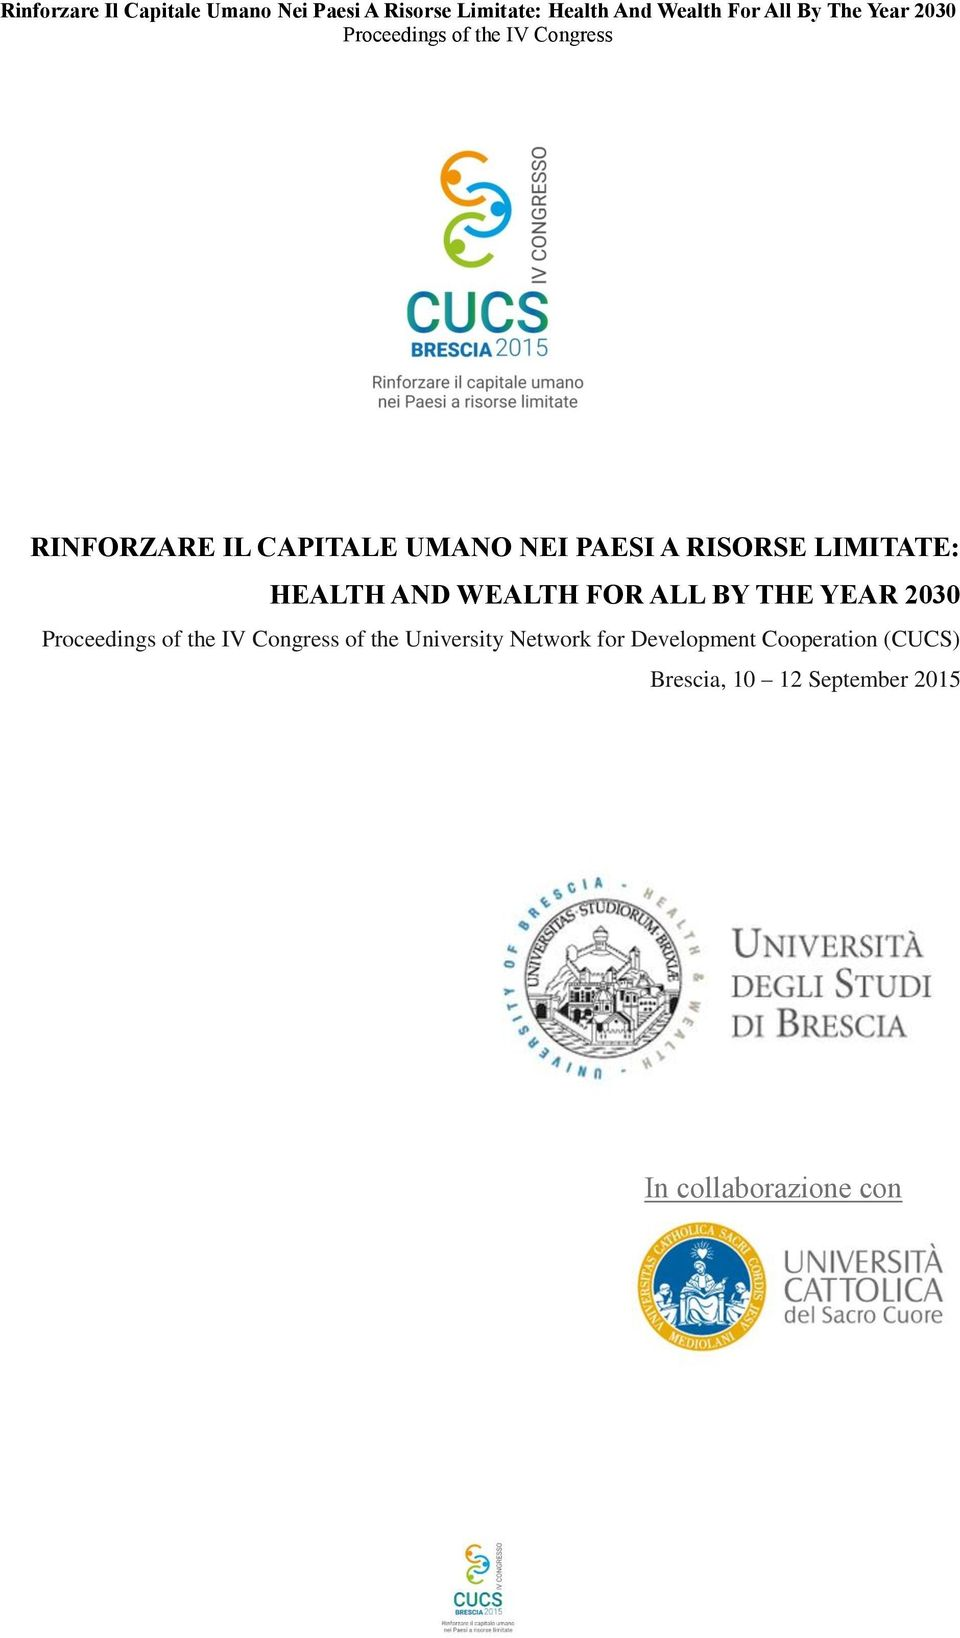 of the University Network for Development Cooperation